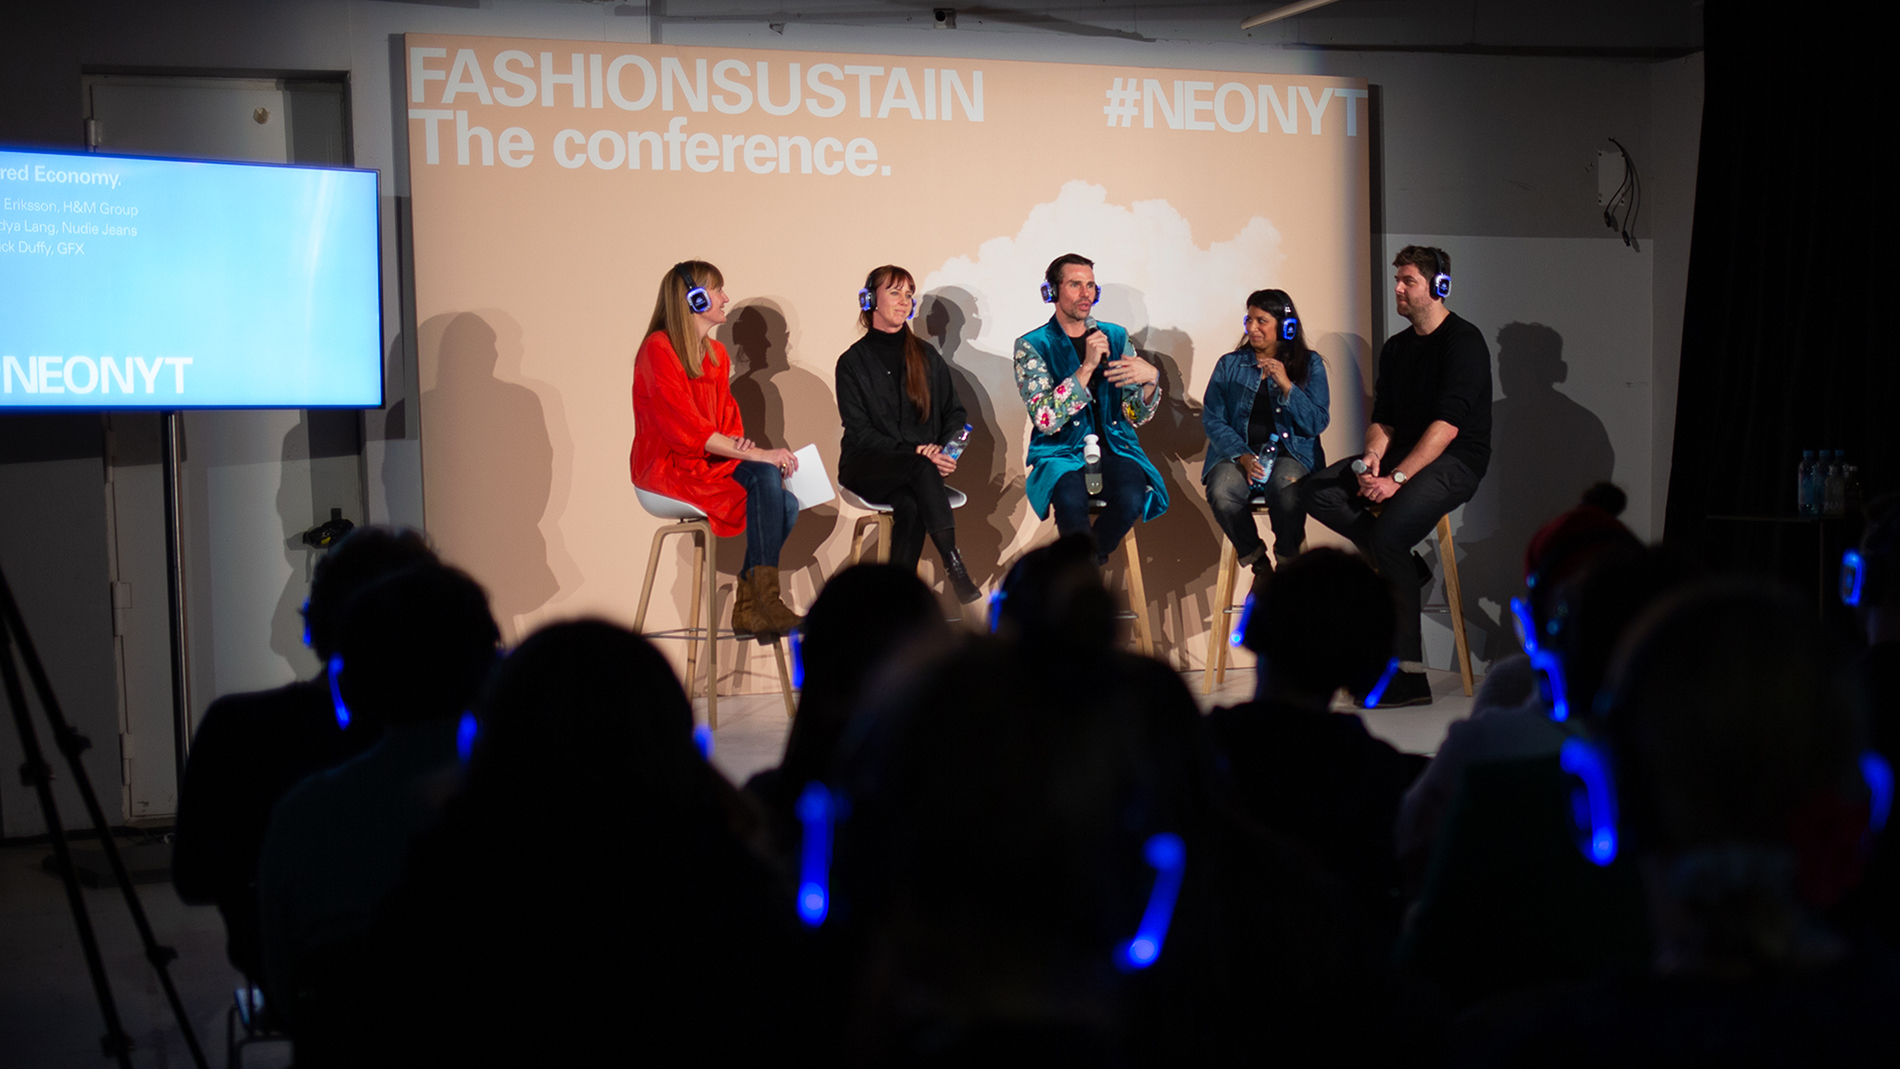 Fashionsustain - the conference at Neonyt